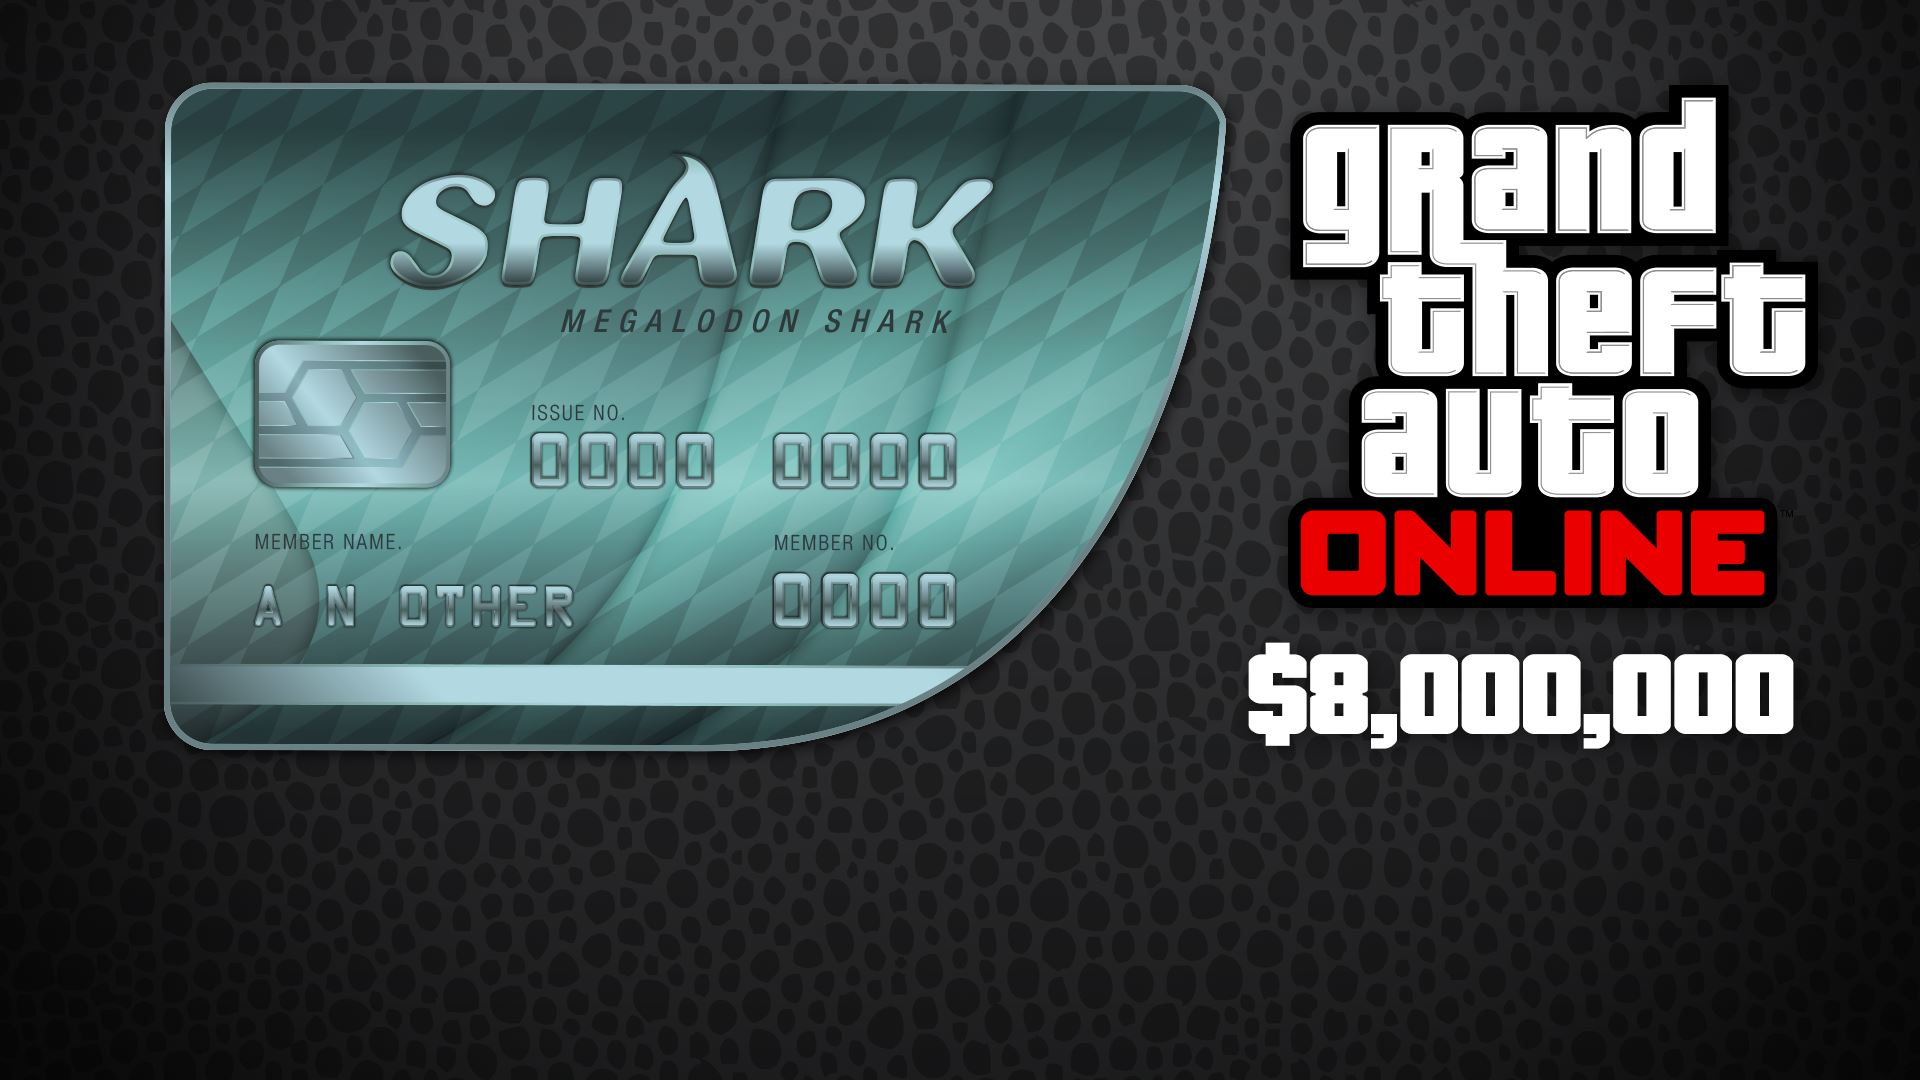 Grand Theft Auto Online: Megalodon Shark 8 000 000$